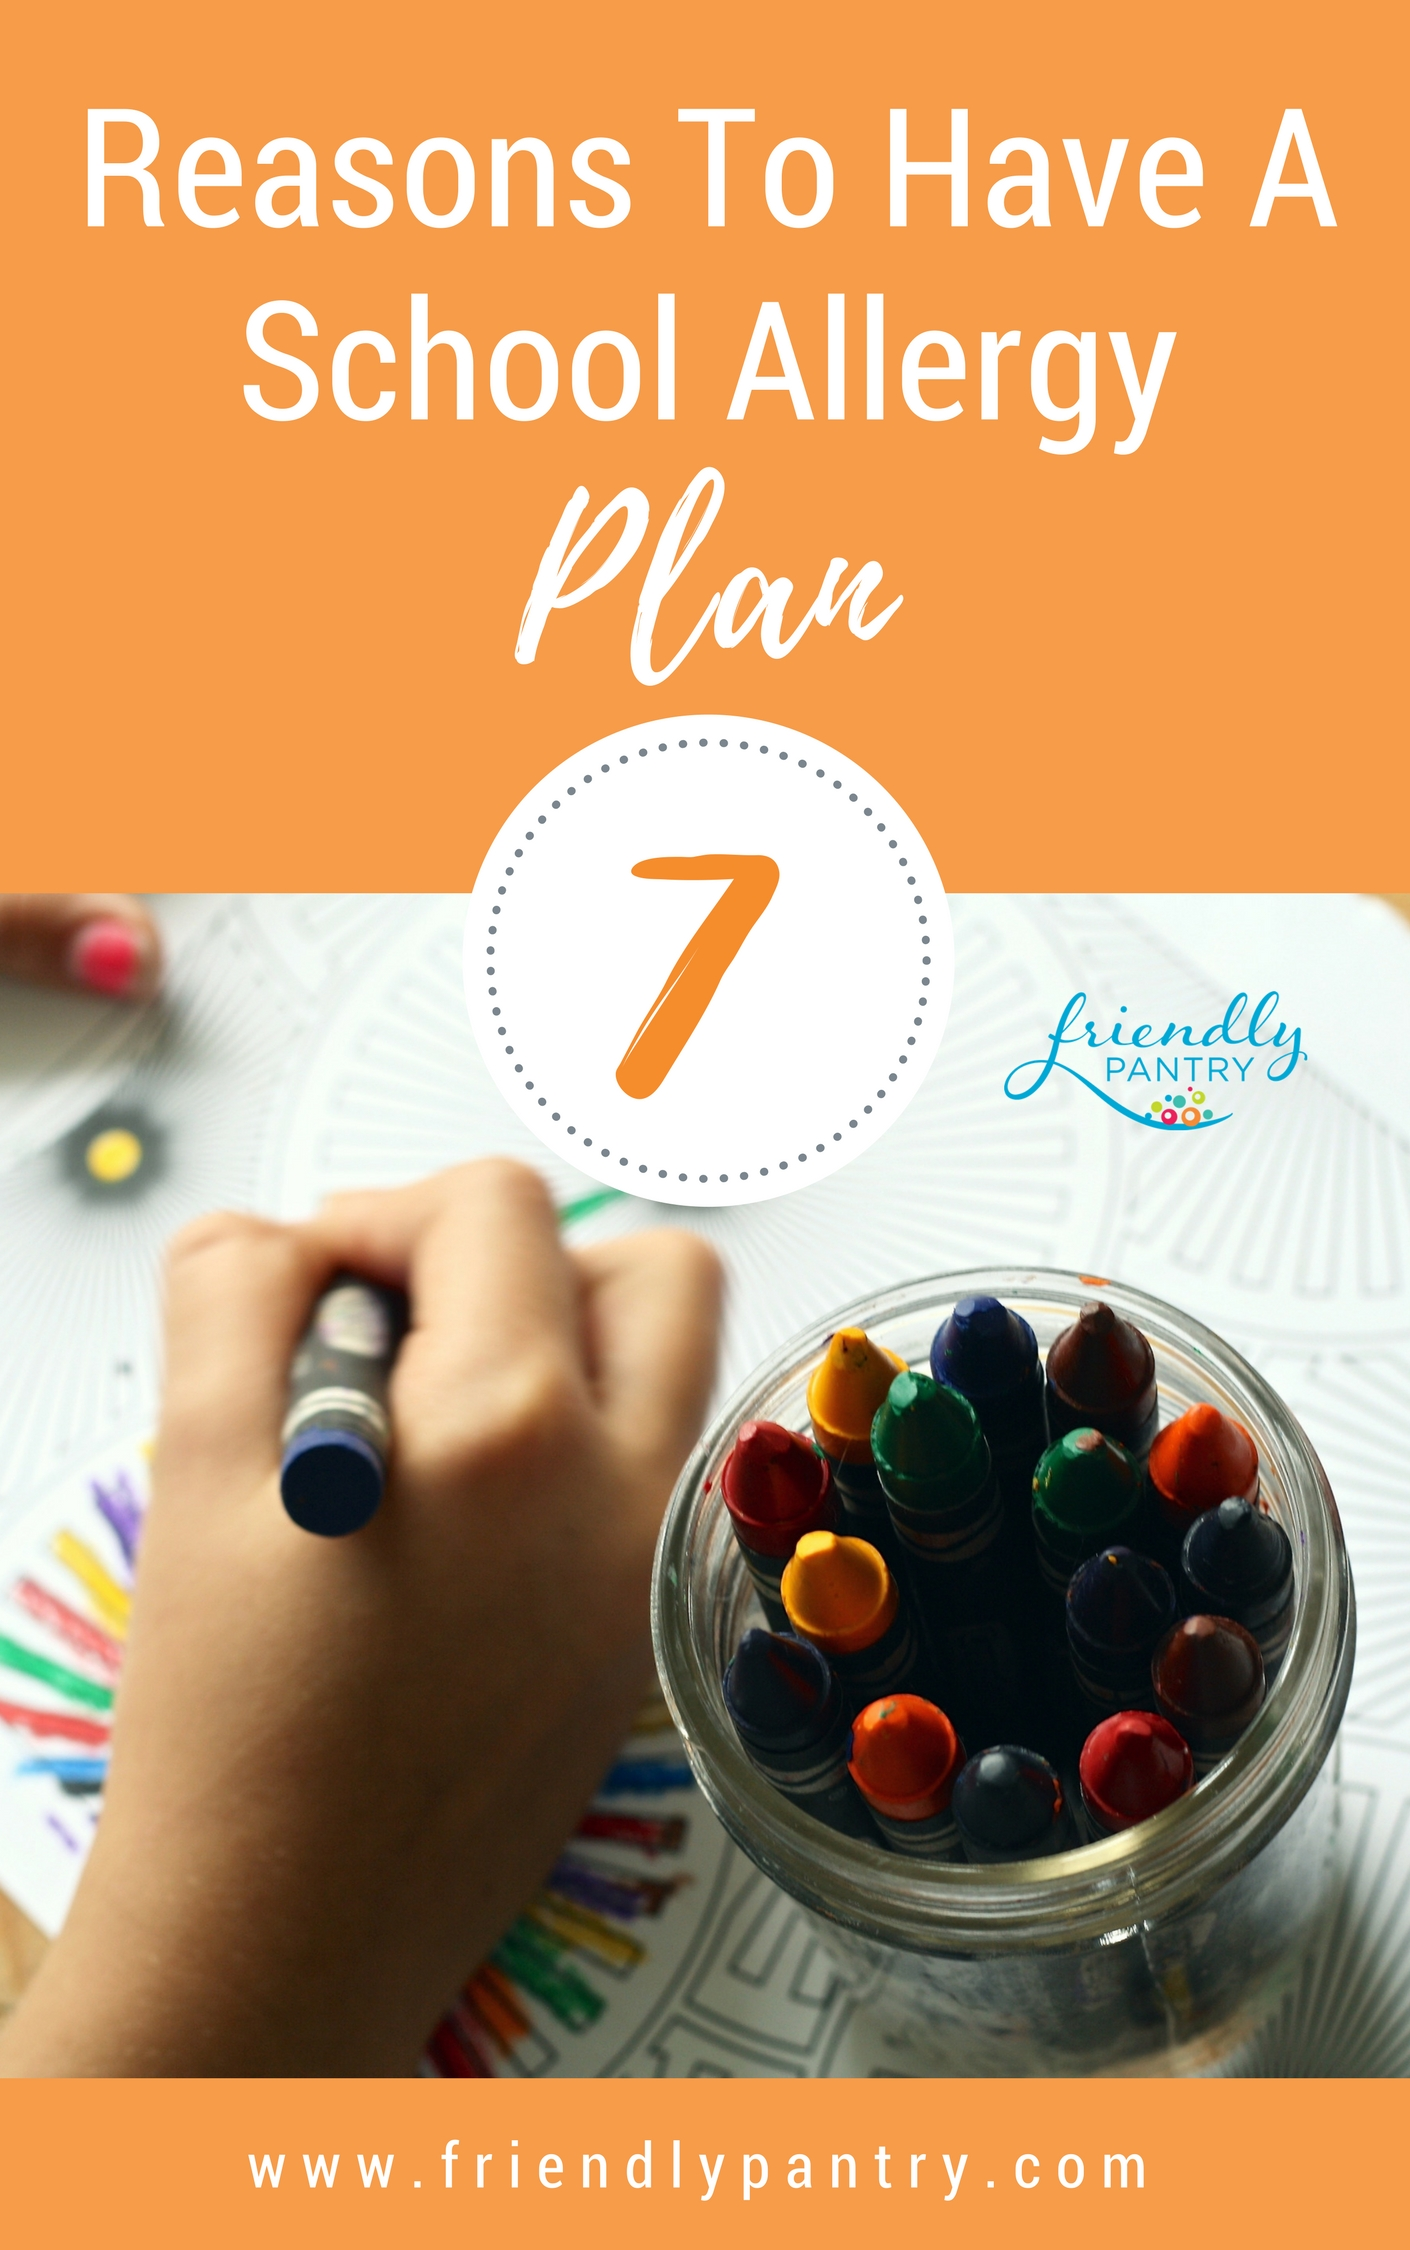 7 Reasons to have a school allergy plan.jpg